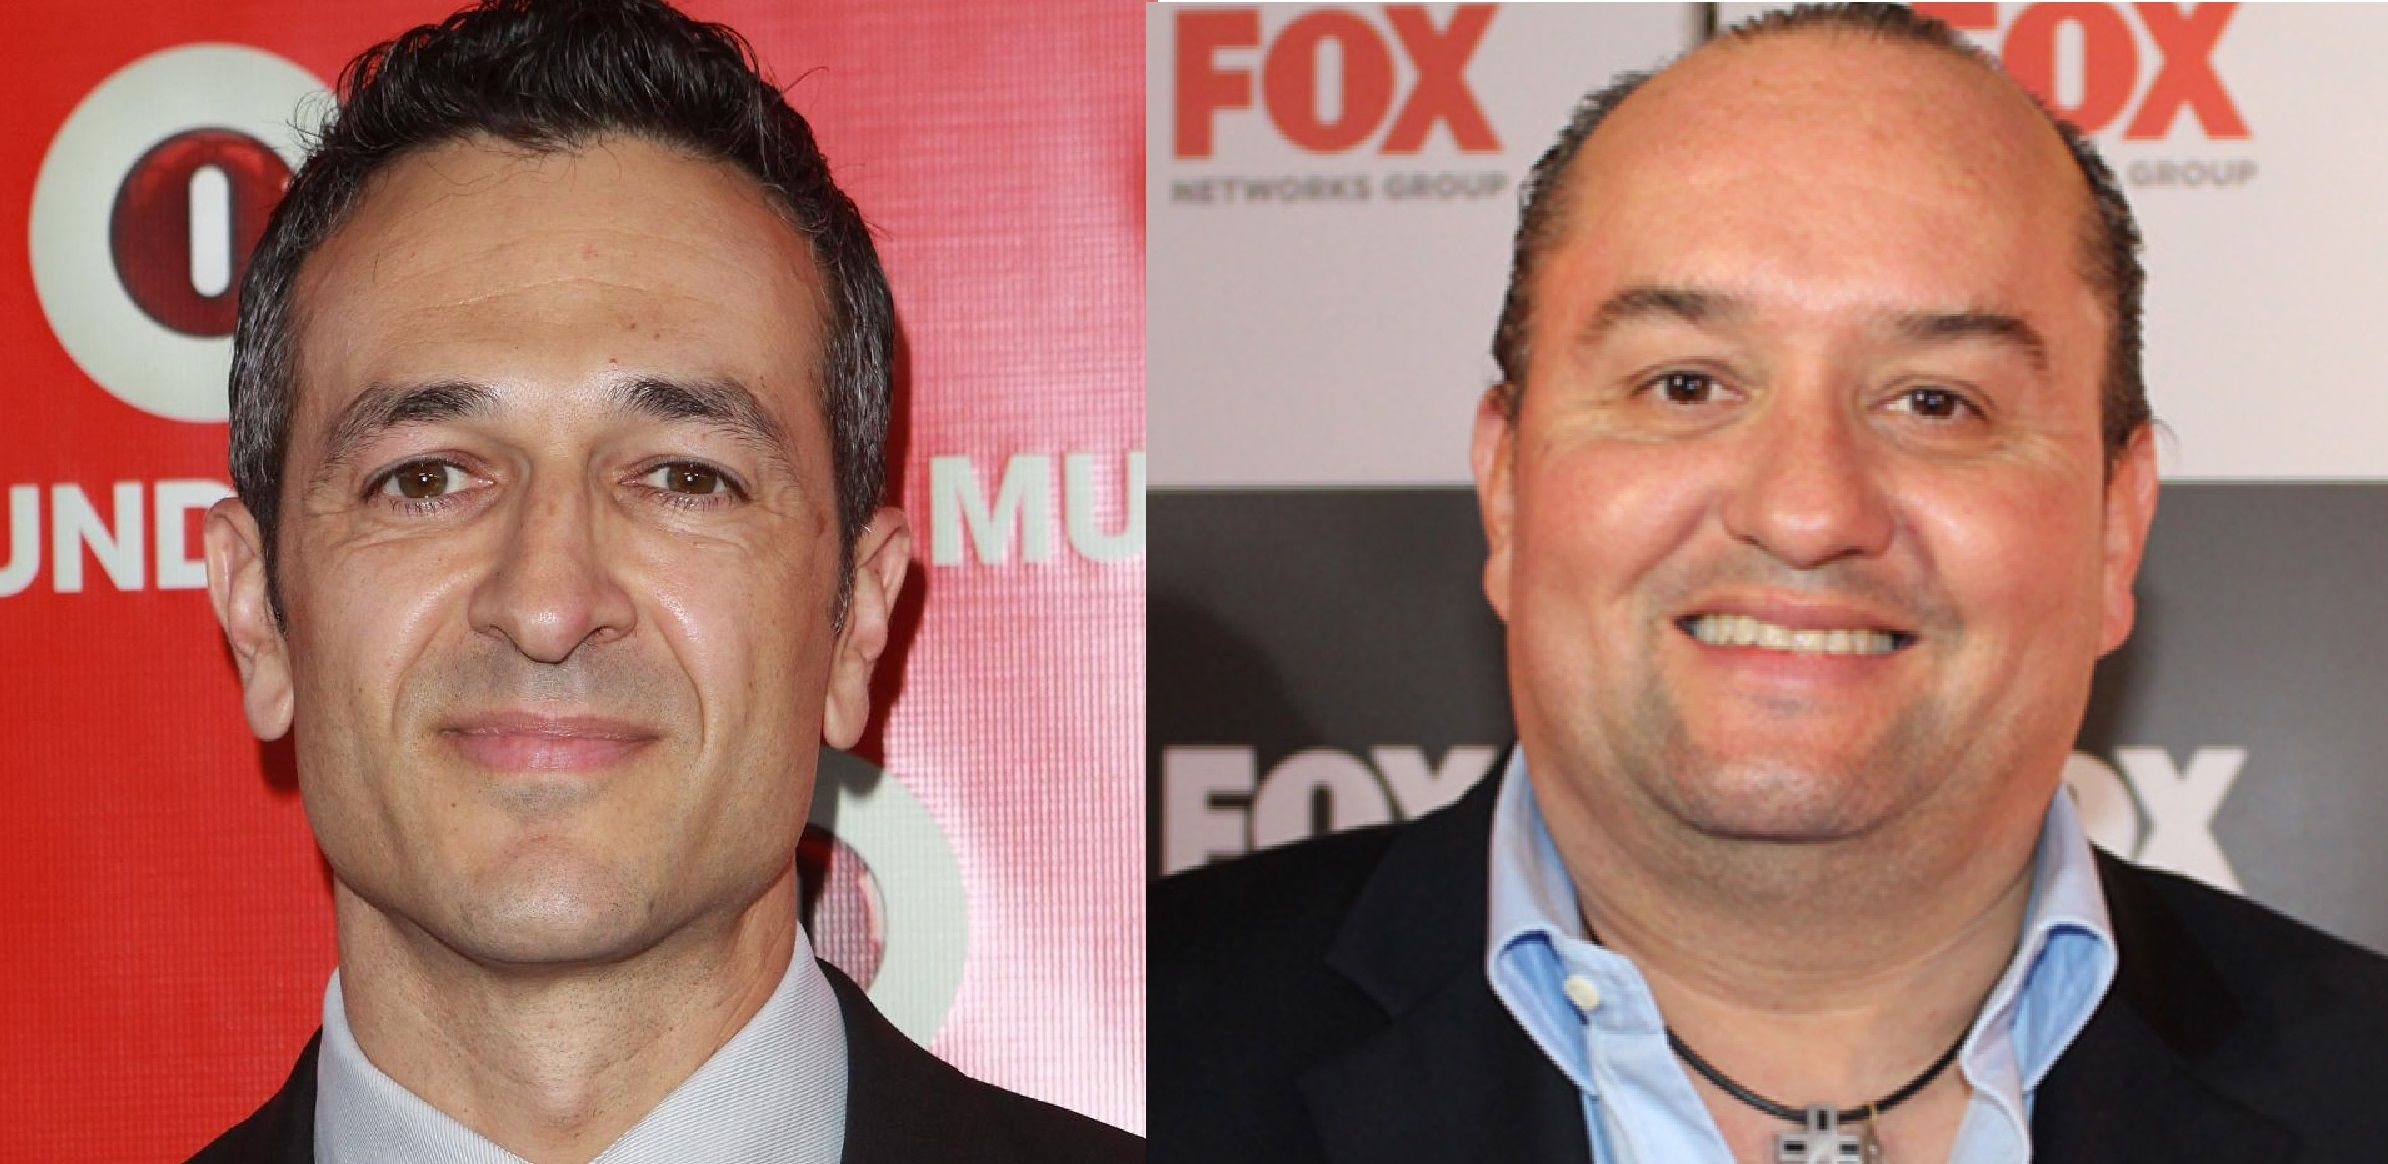 Ex-Fox Execs Indicted for Bribing FIFA in World Cup Media Rights War